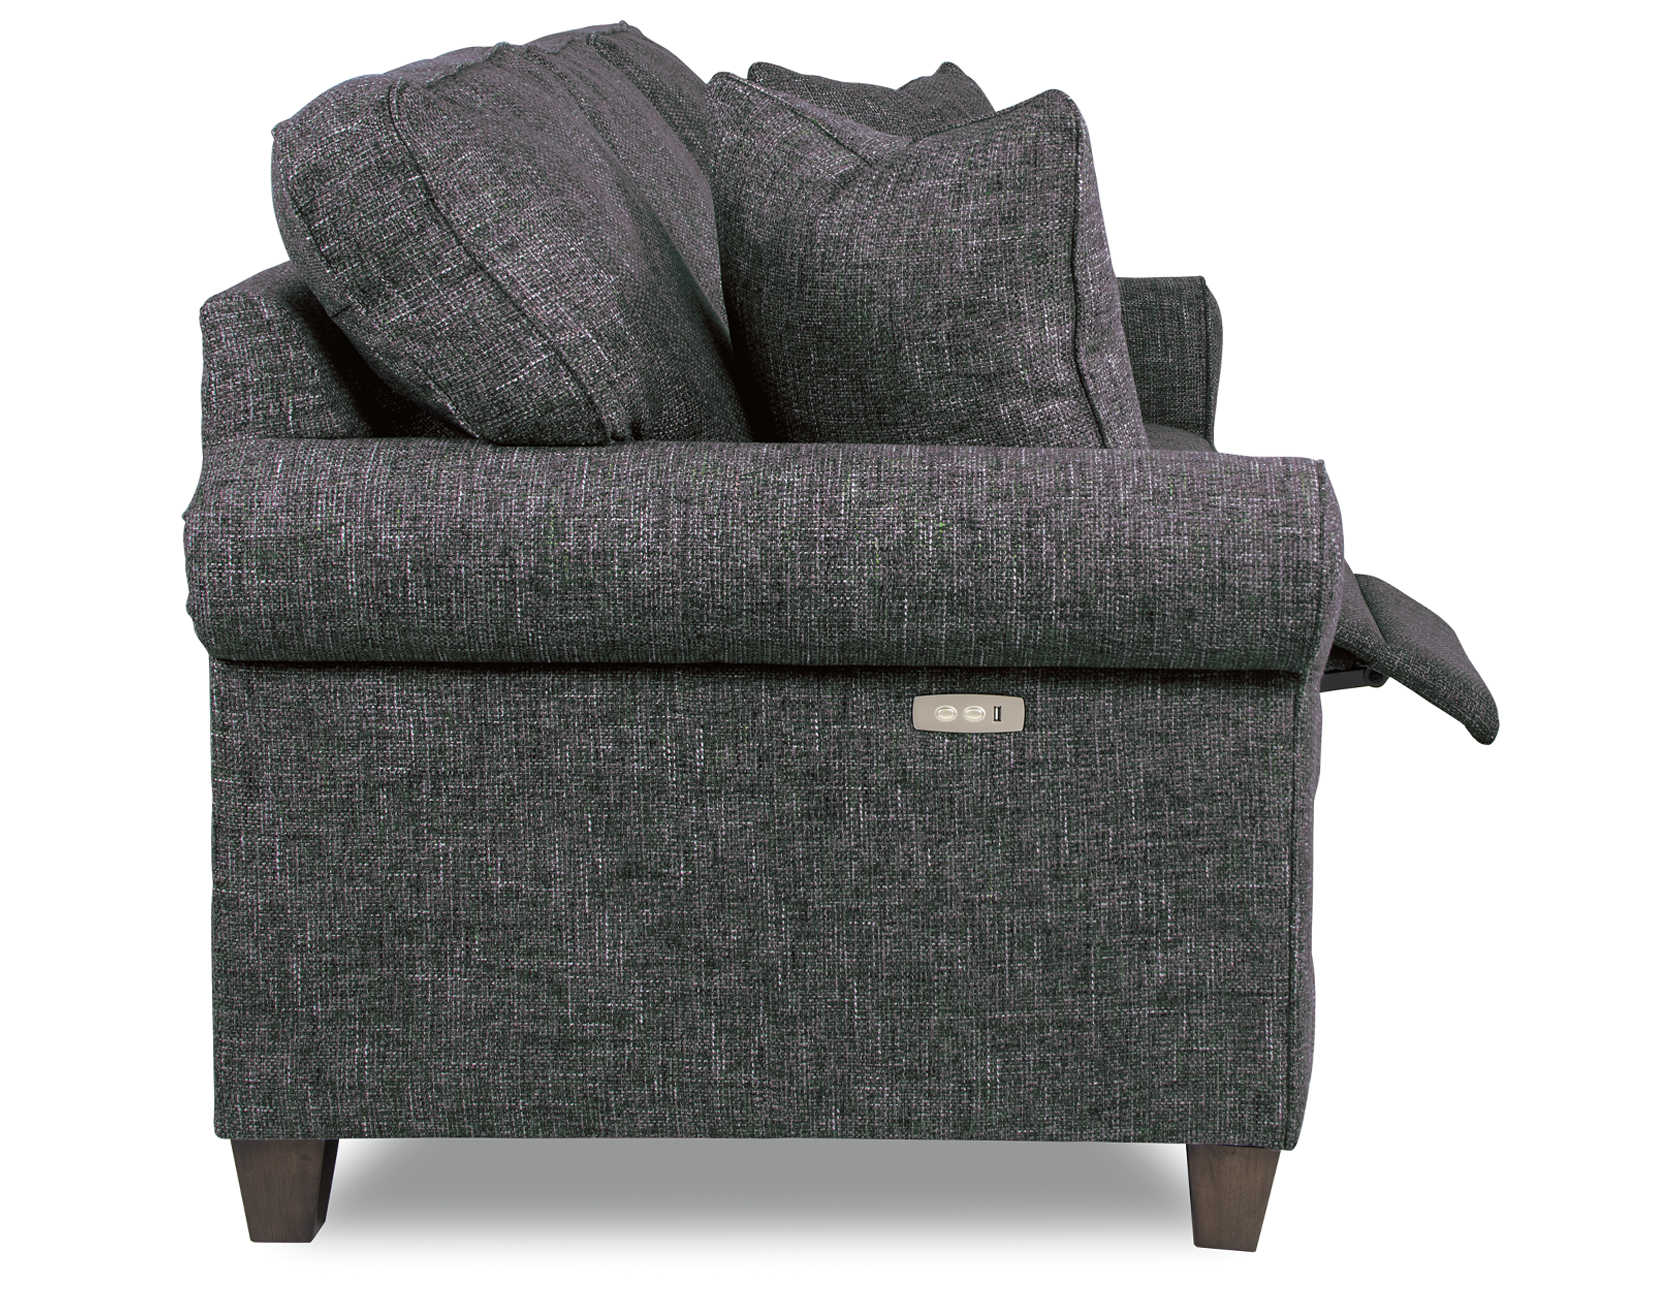 animated Makenna duo® Reclining Sofa side view